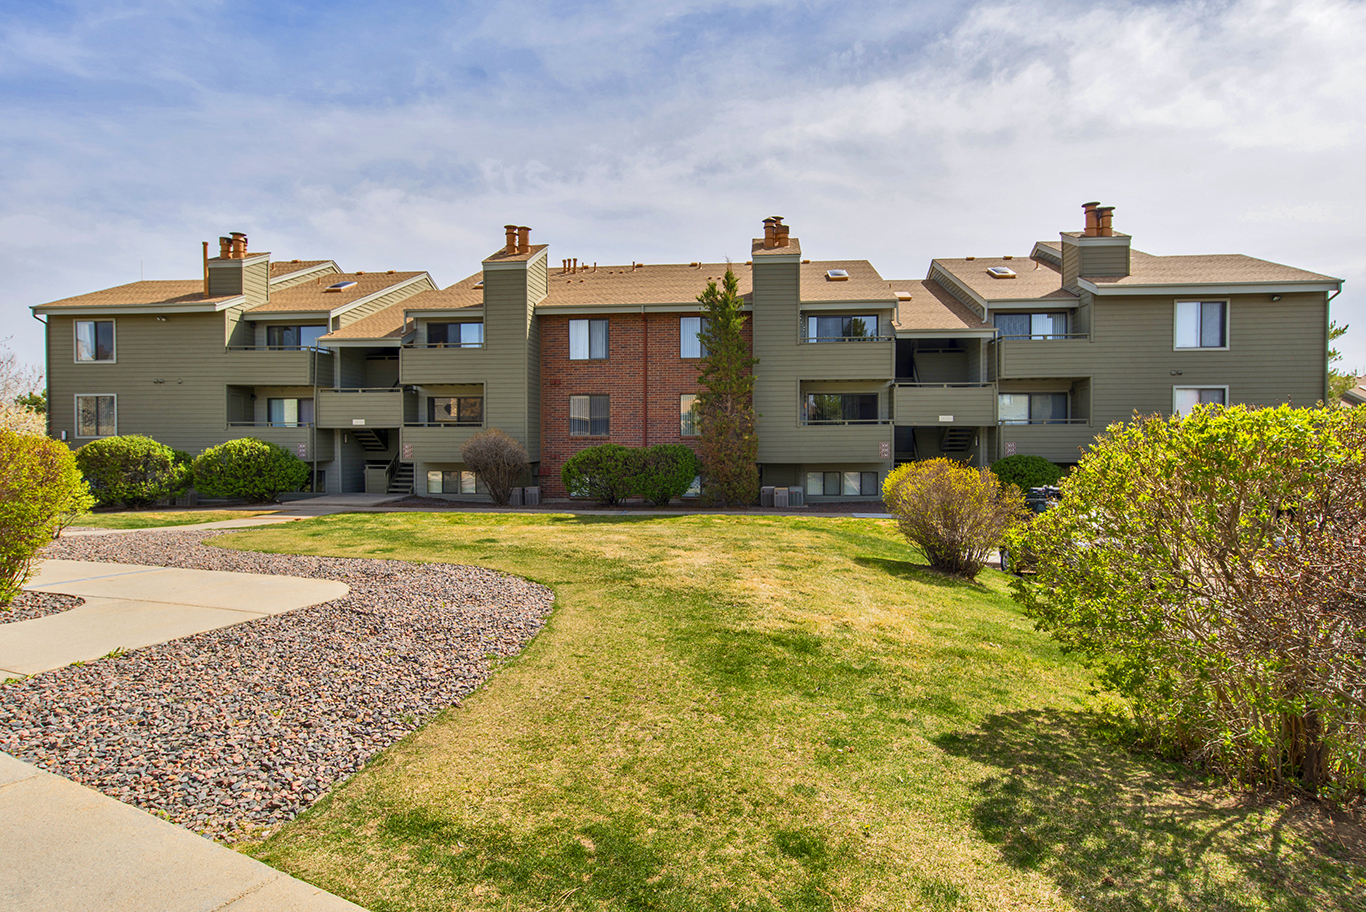 deer crest apartments in denver purchased by griffis blessing for